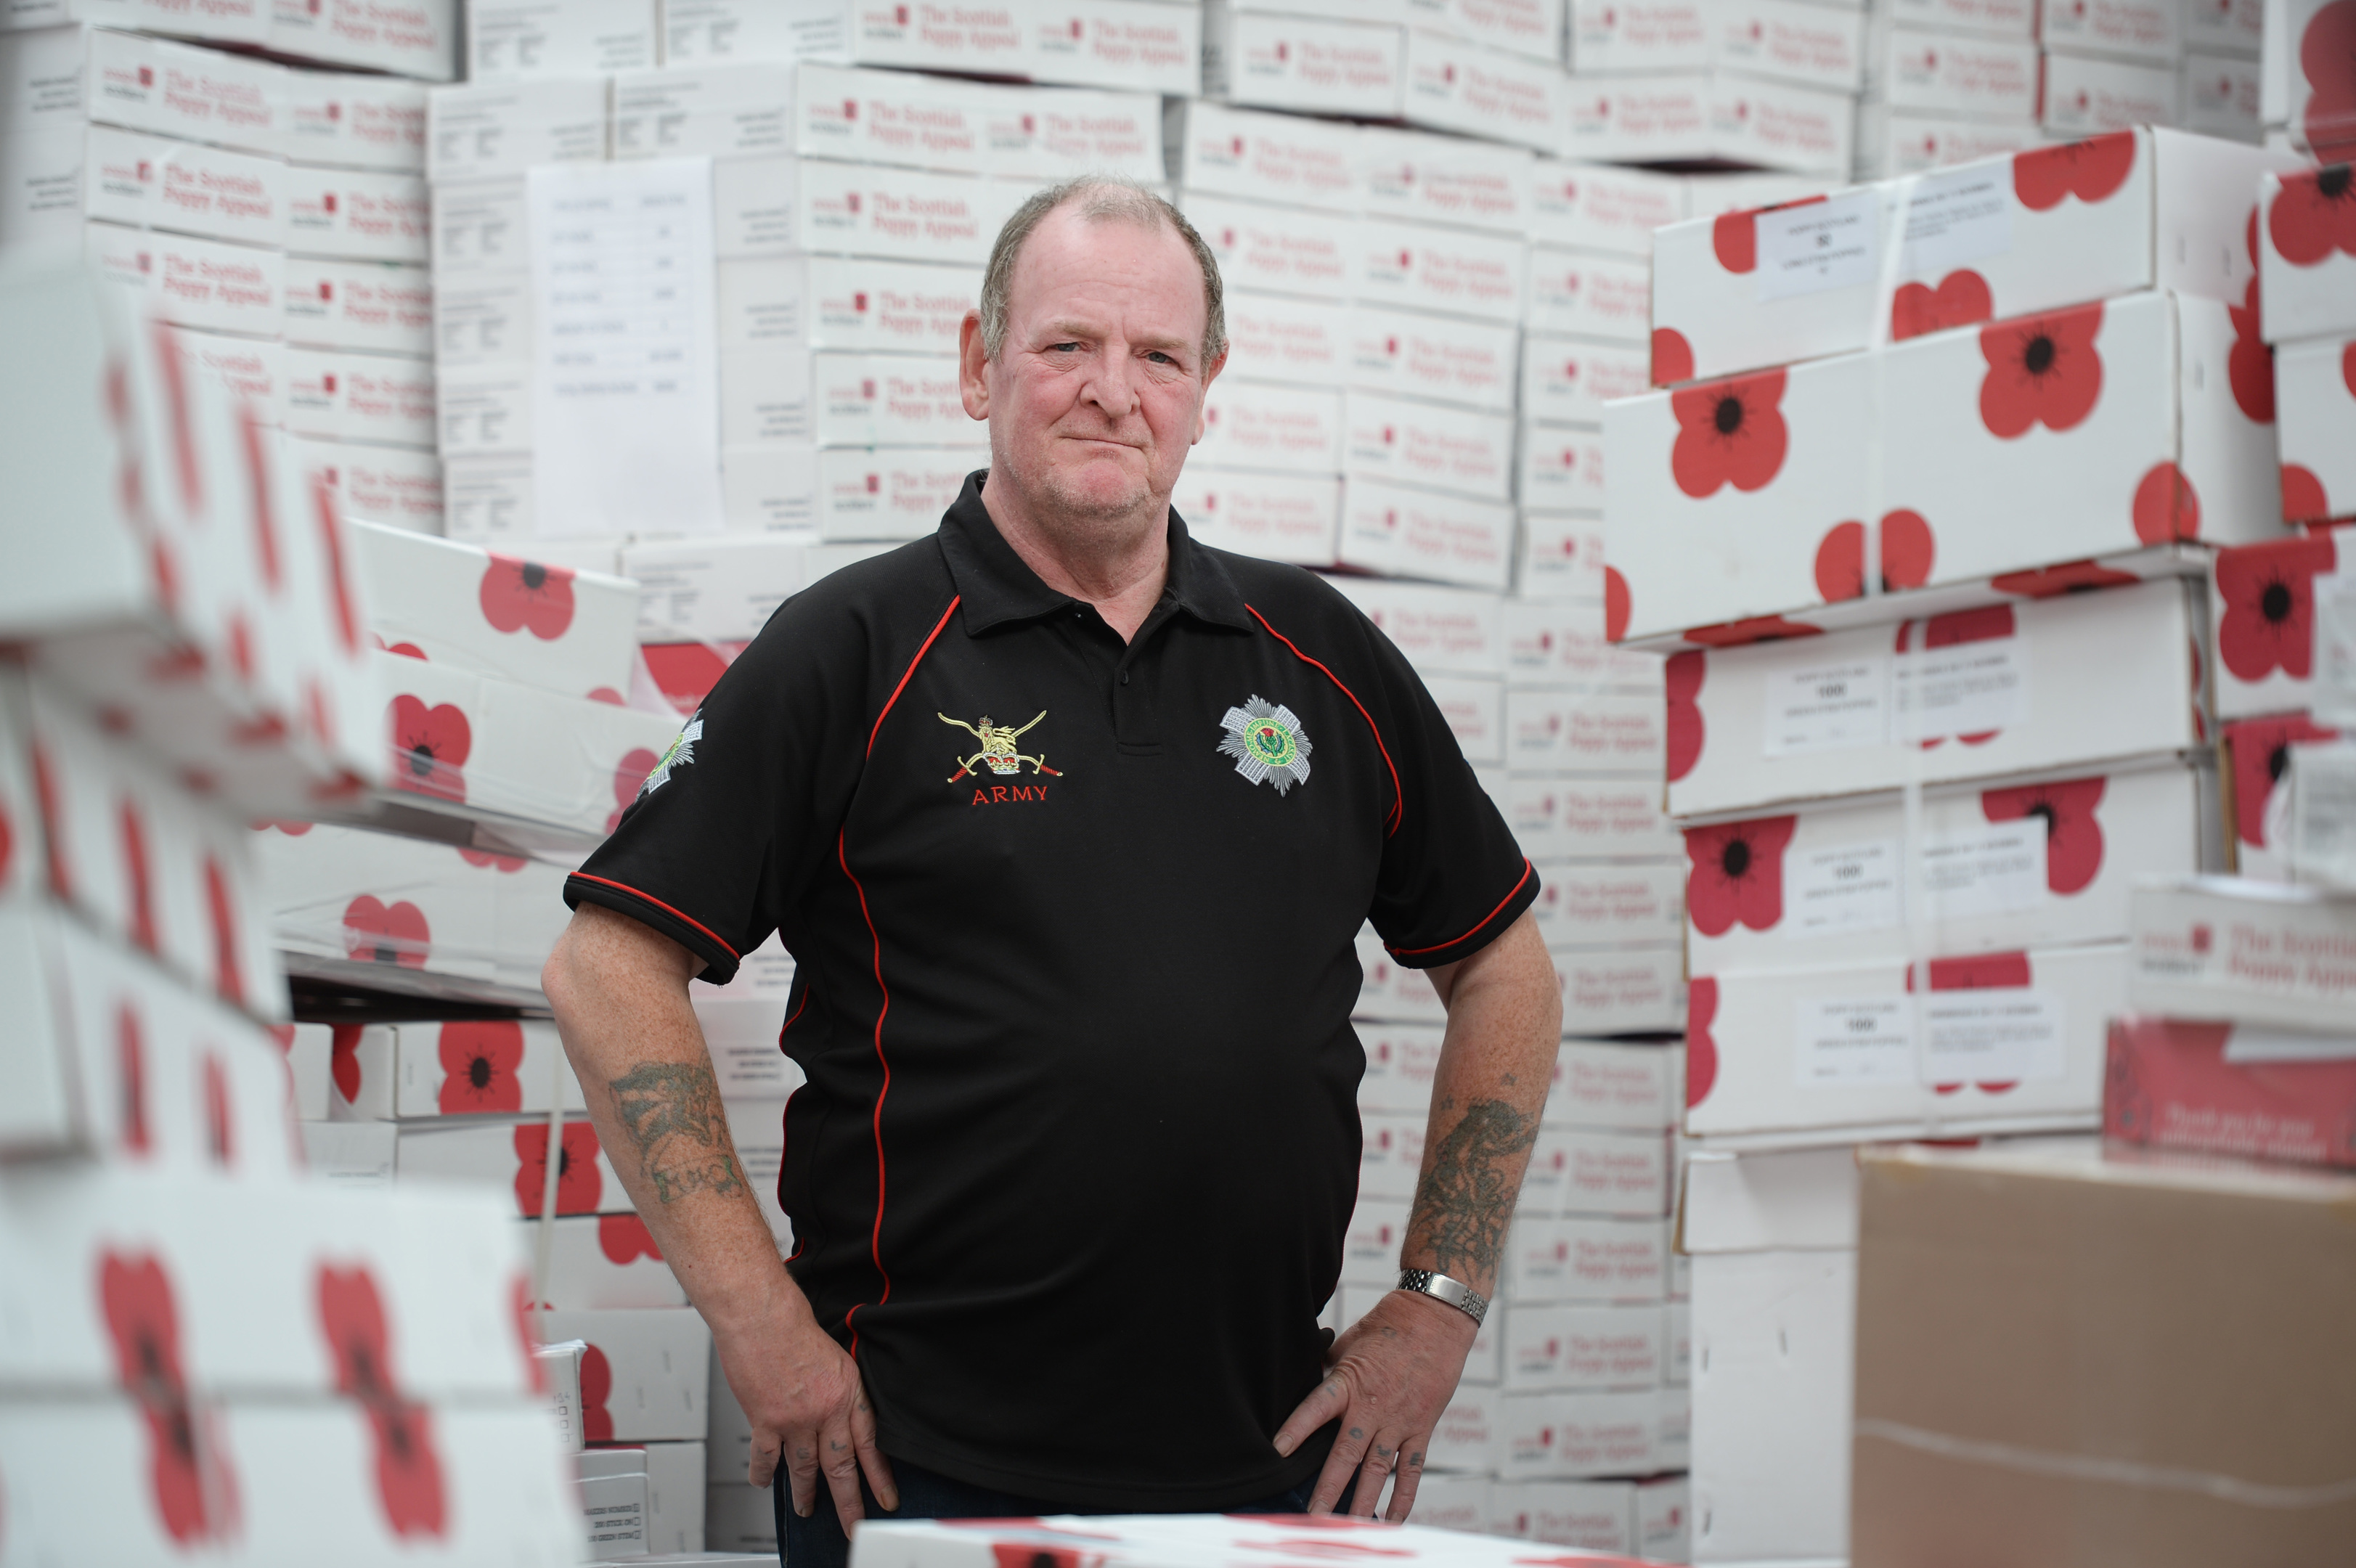 Veteran Donald with boxes of poppies